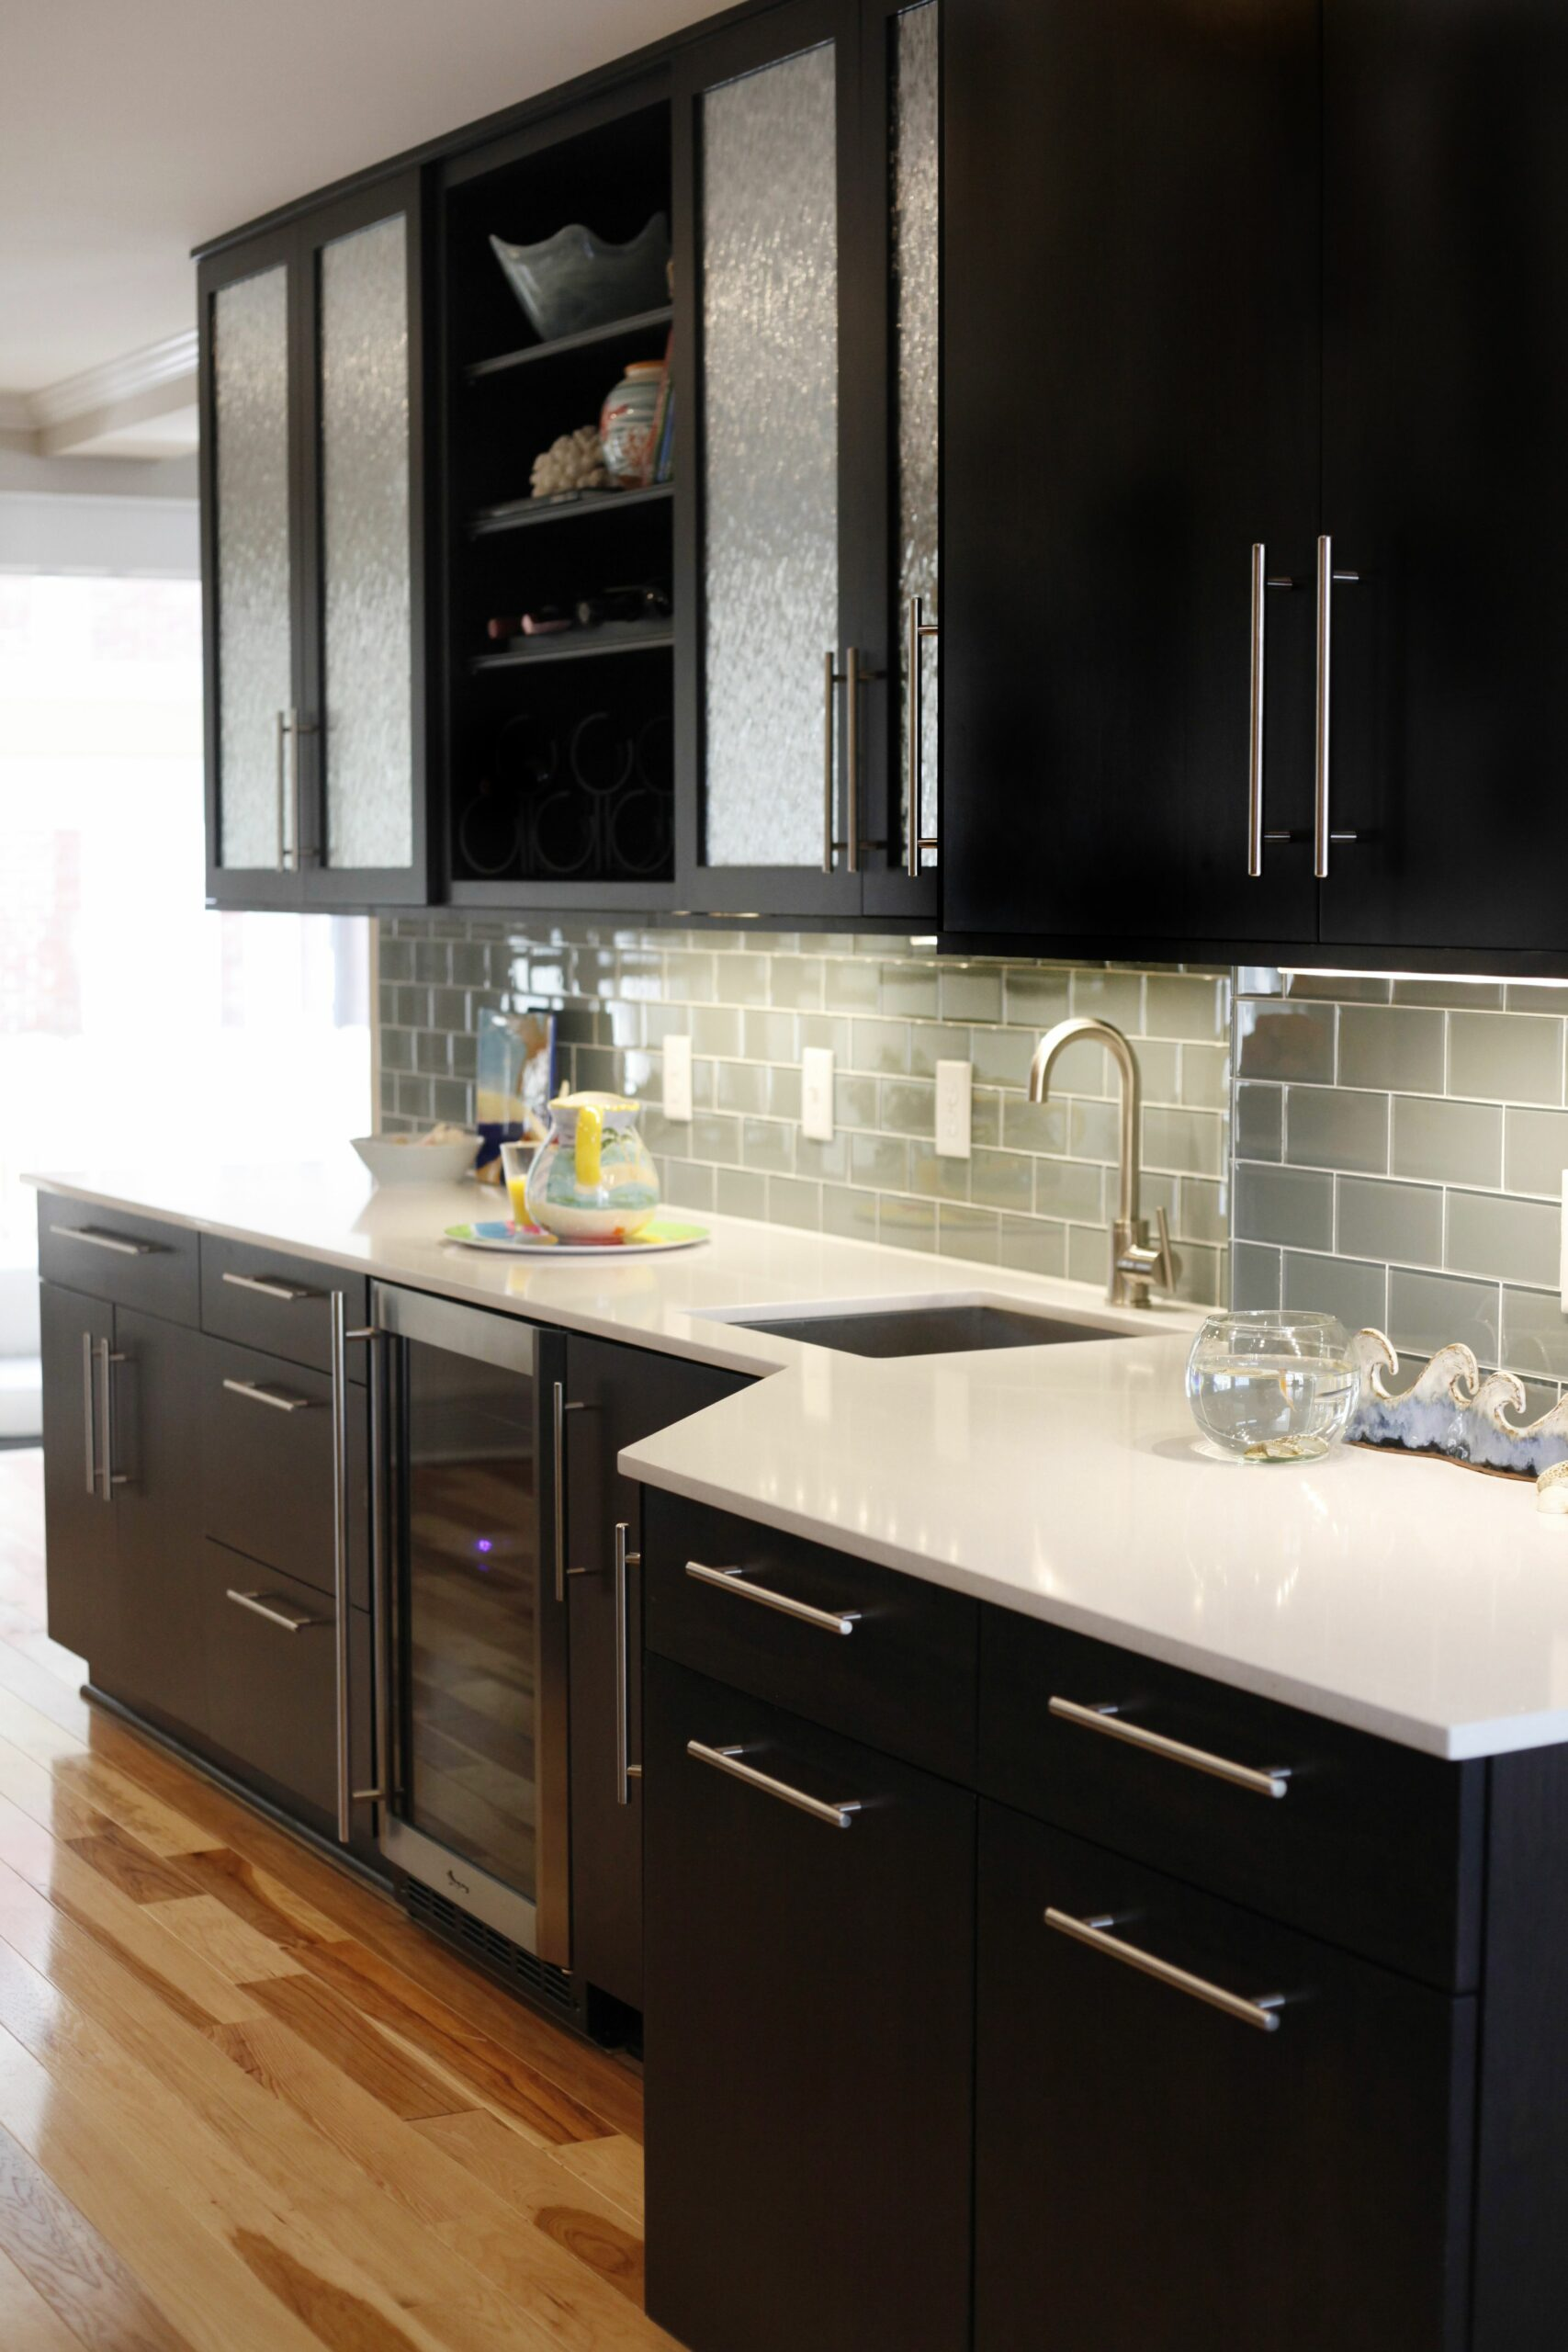 White Kitchen Cabinets With Black Hardware And Hinges